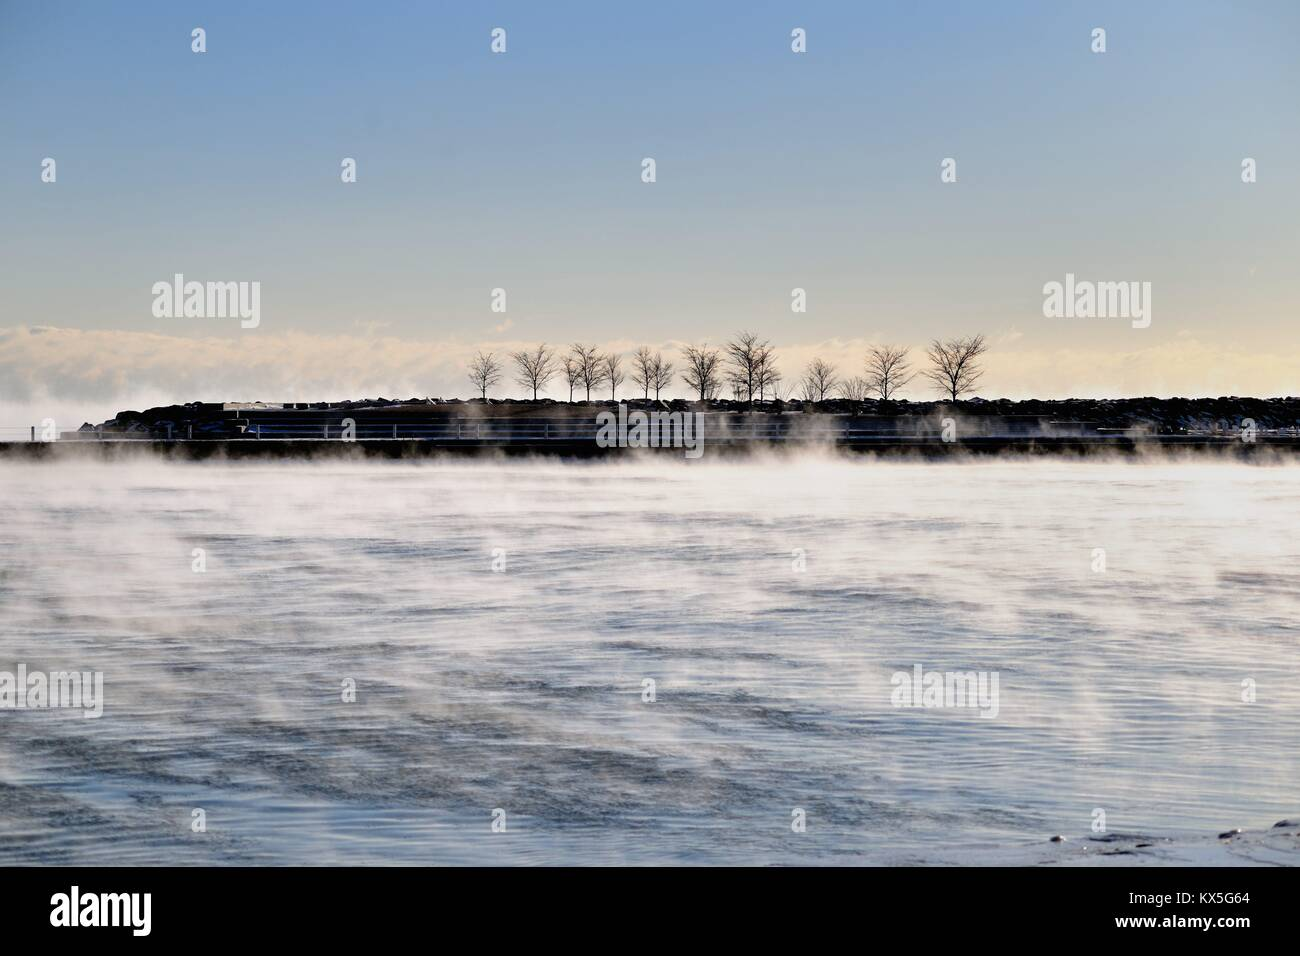 Vapor rises from Ice forming on Lake Michigan waters in Chicago's 31st Street Harbor. Chicago, Illinois, USA. - Stock Image